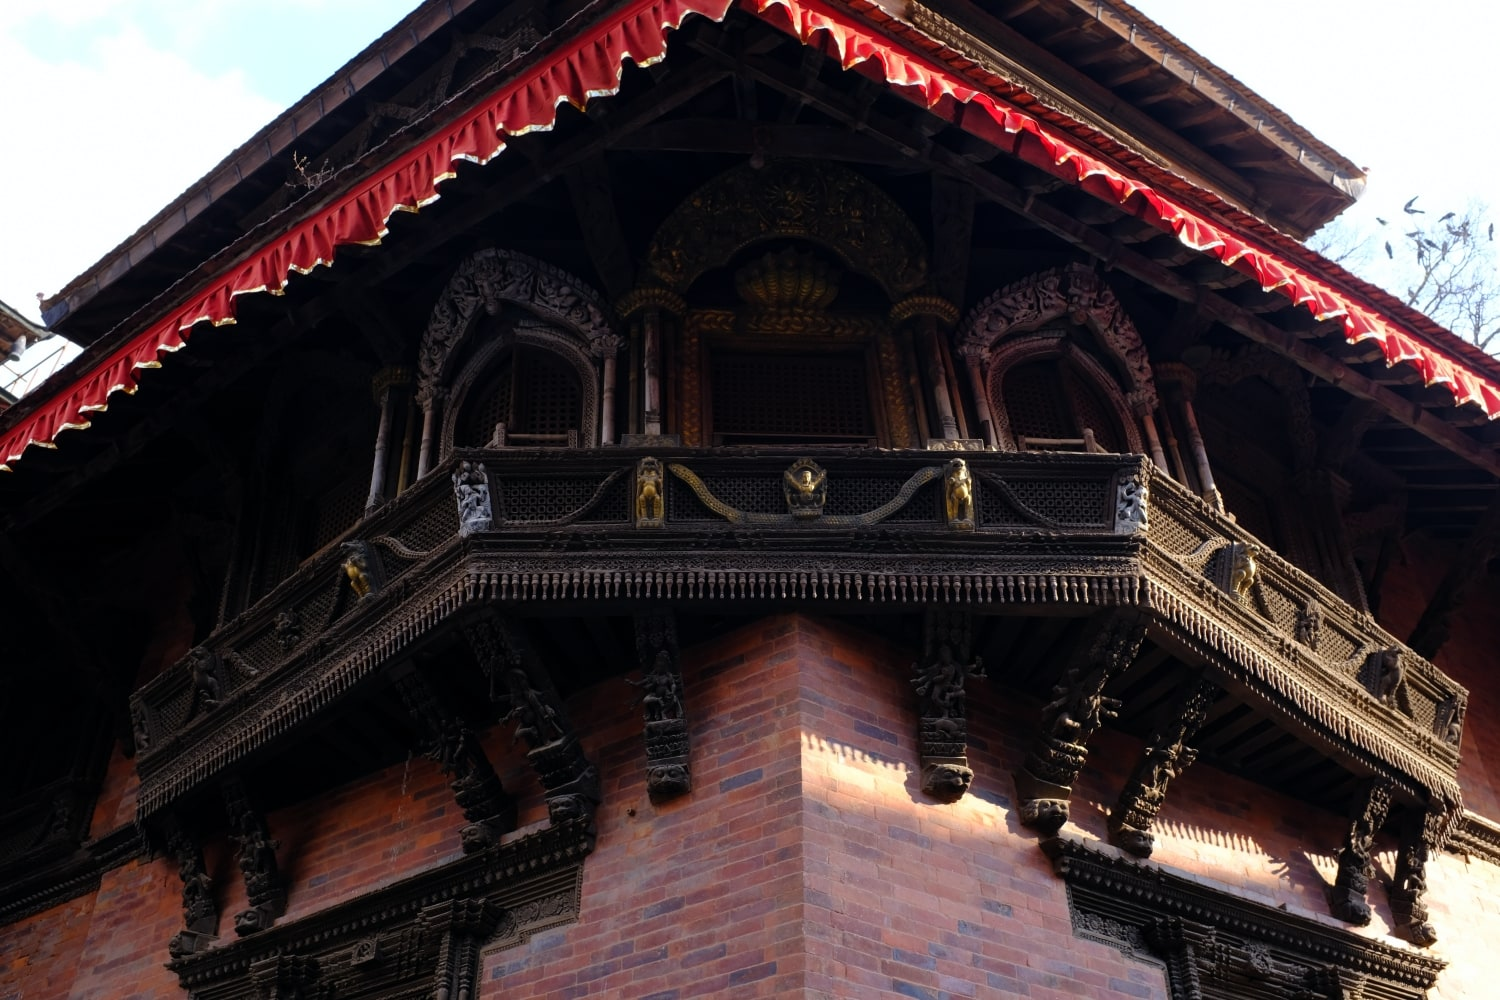 Wood carving at a Temple in Kathmandu Durbar Square